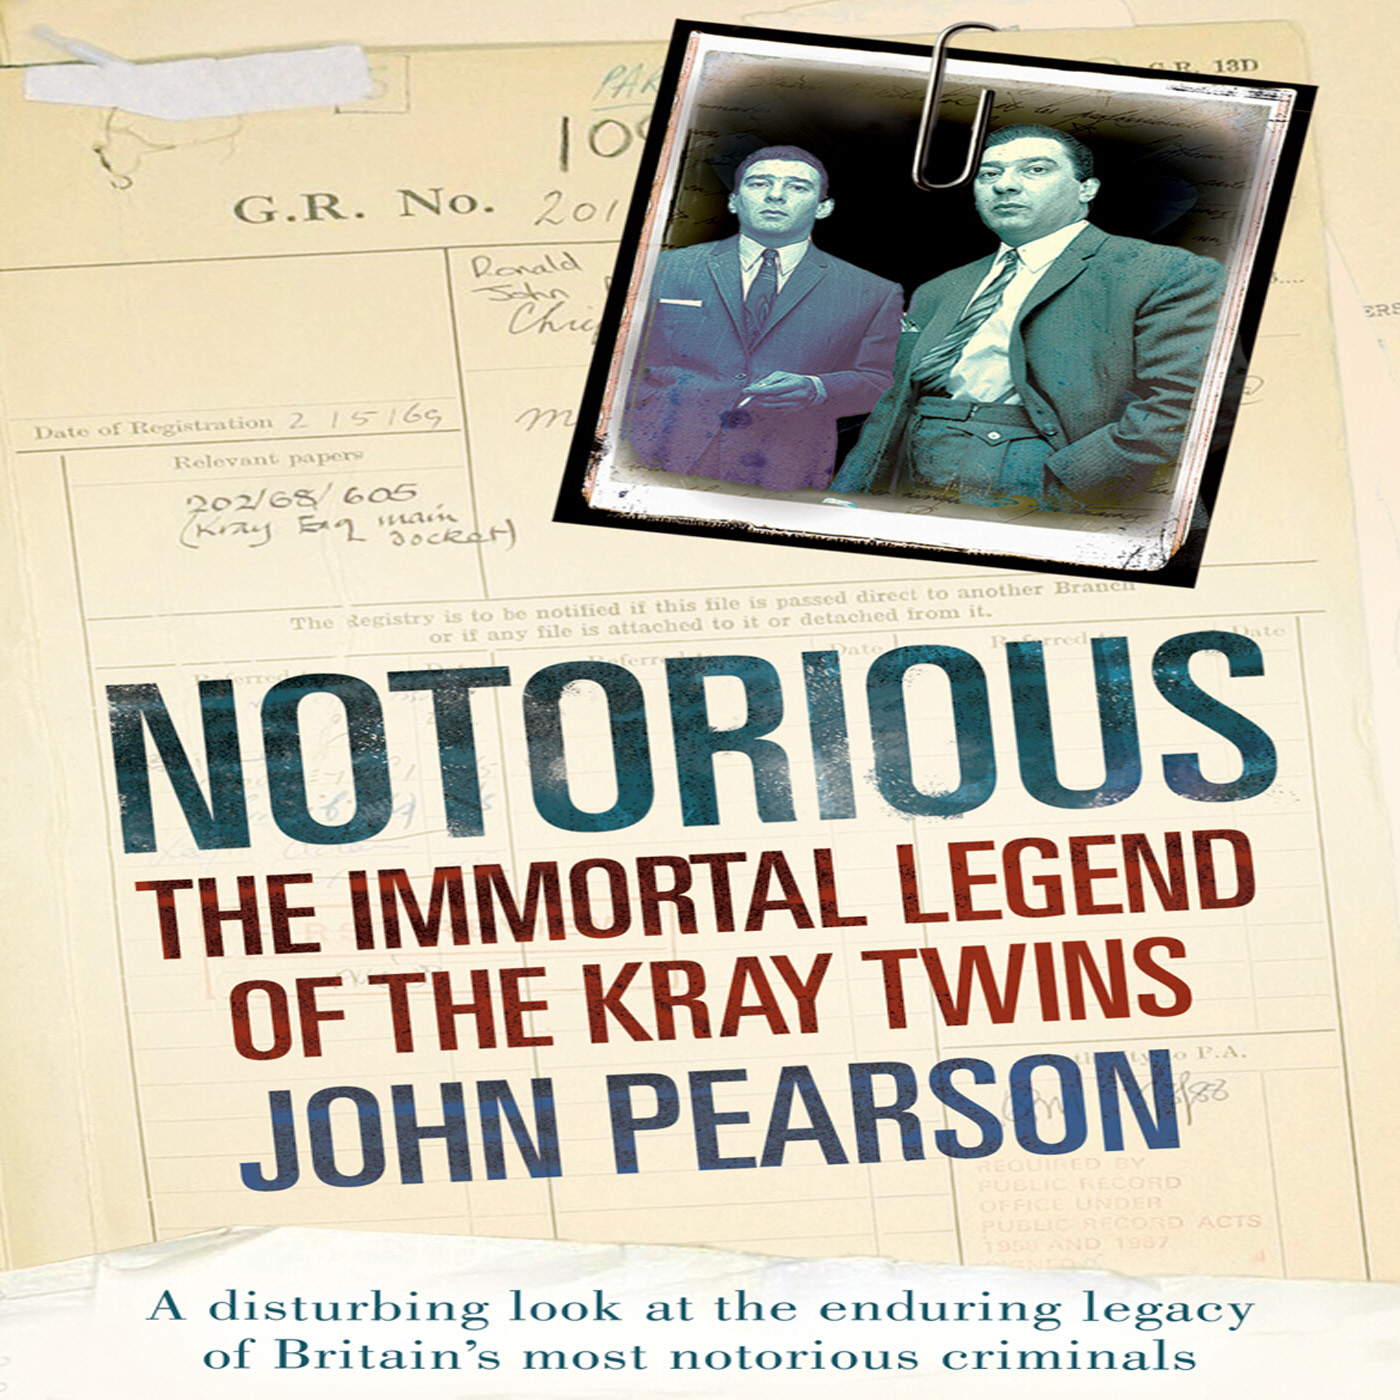 Notorious The Immortal Legend of the Kray Twins